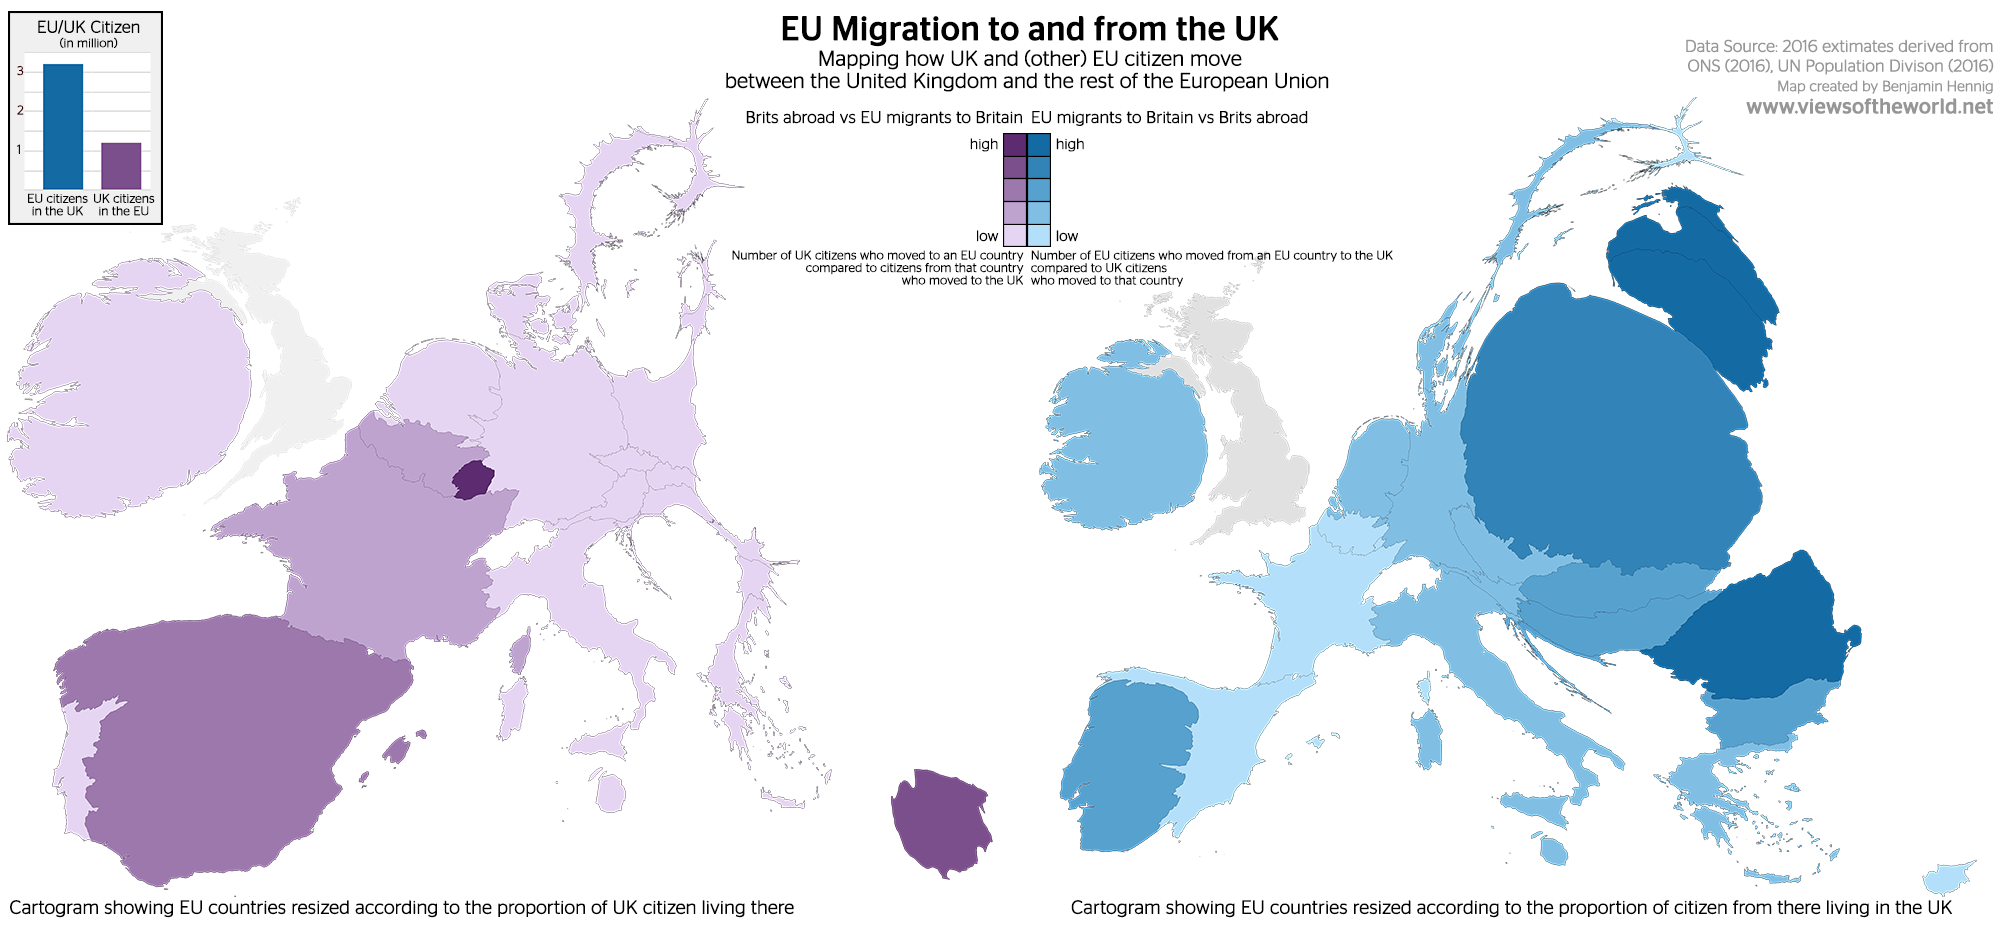 Migration maps between the UK and the EU